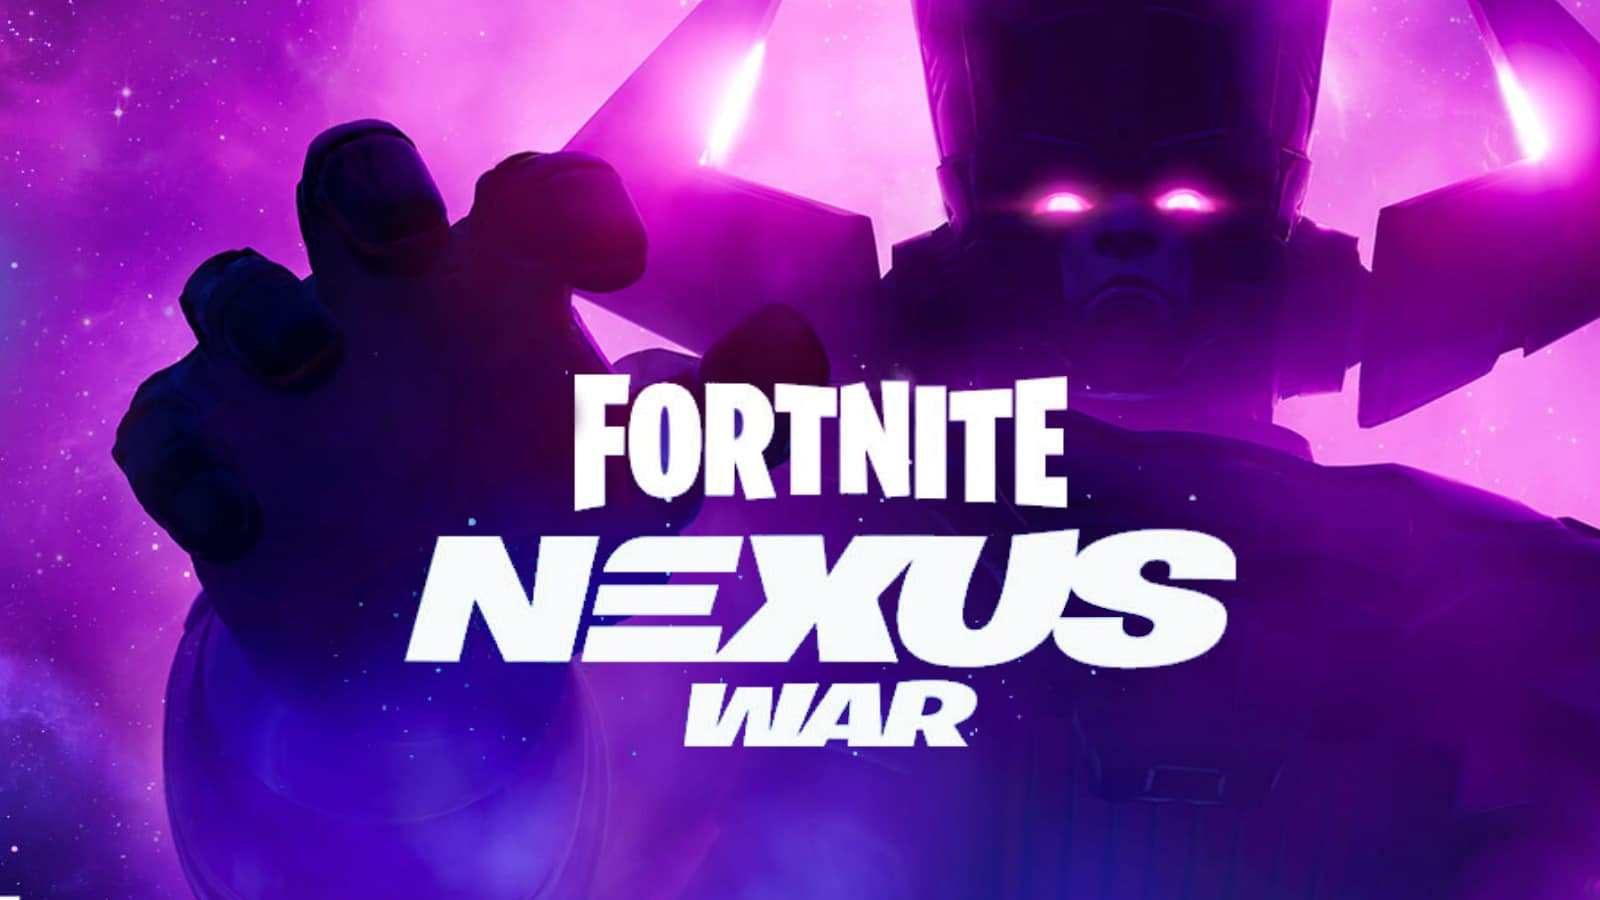 Nexus War event in Fortnite